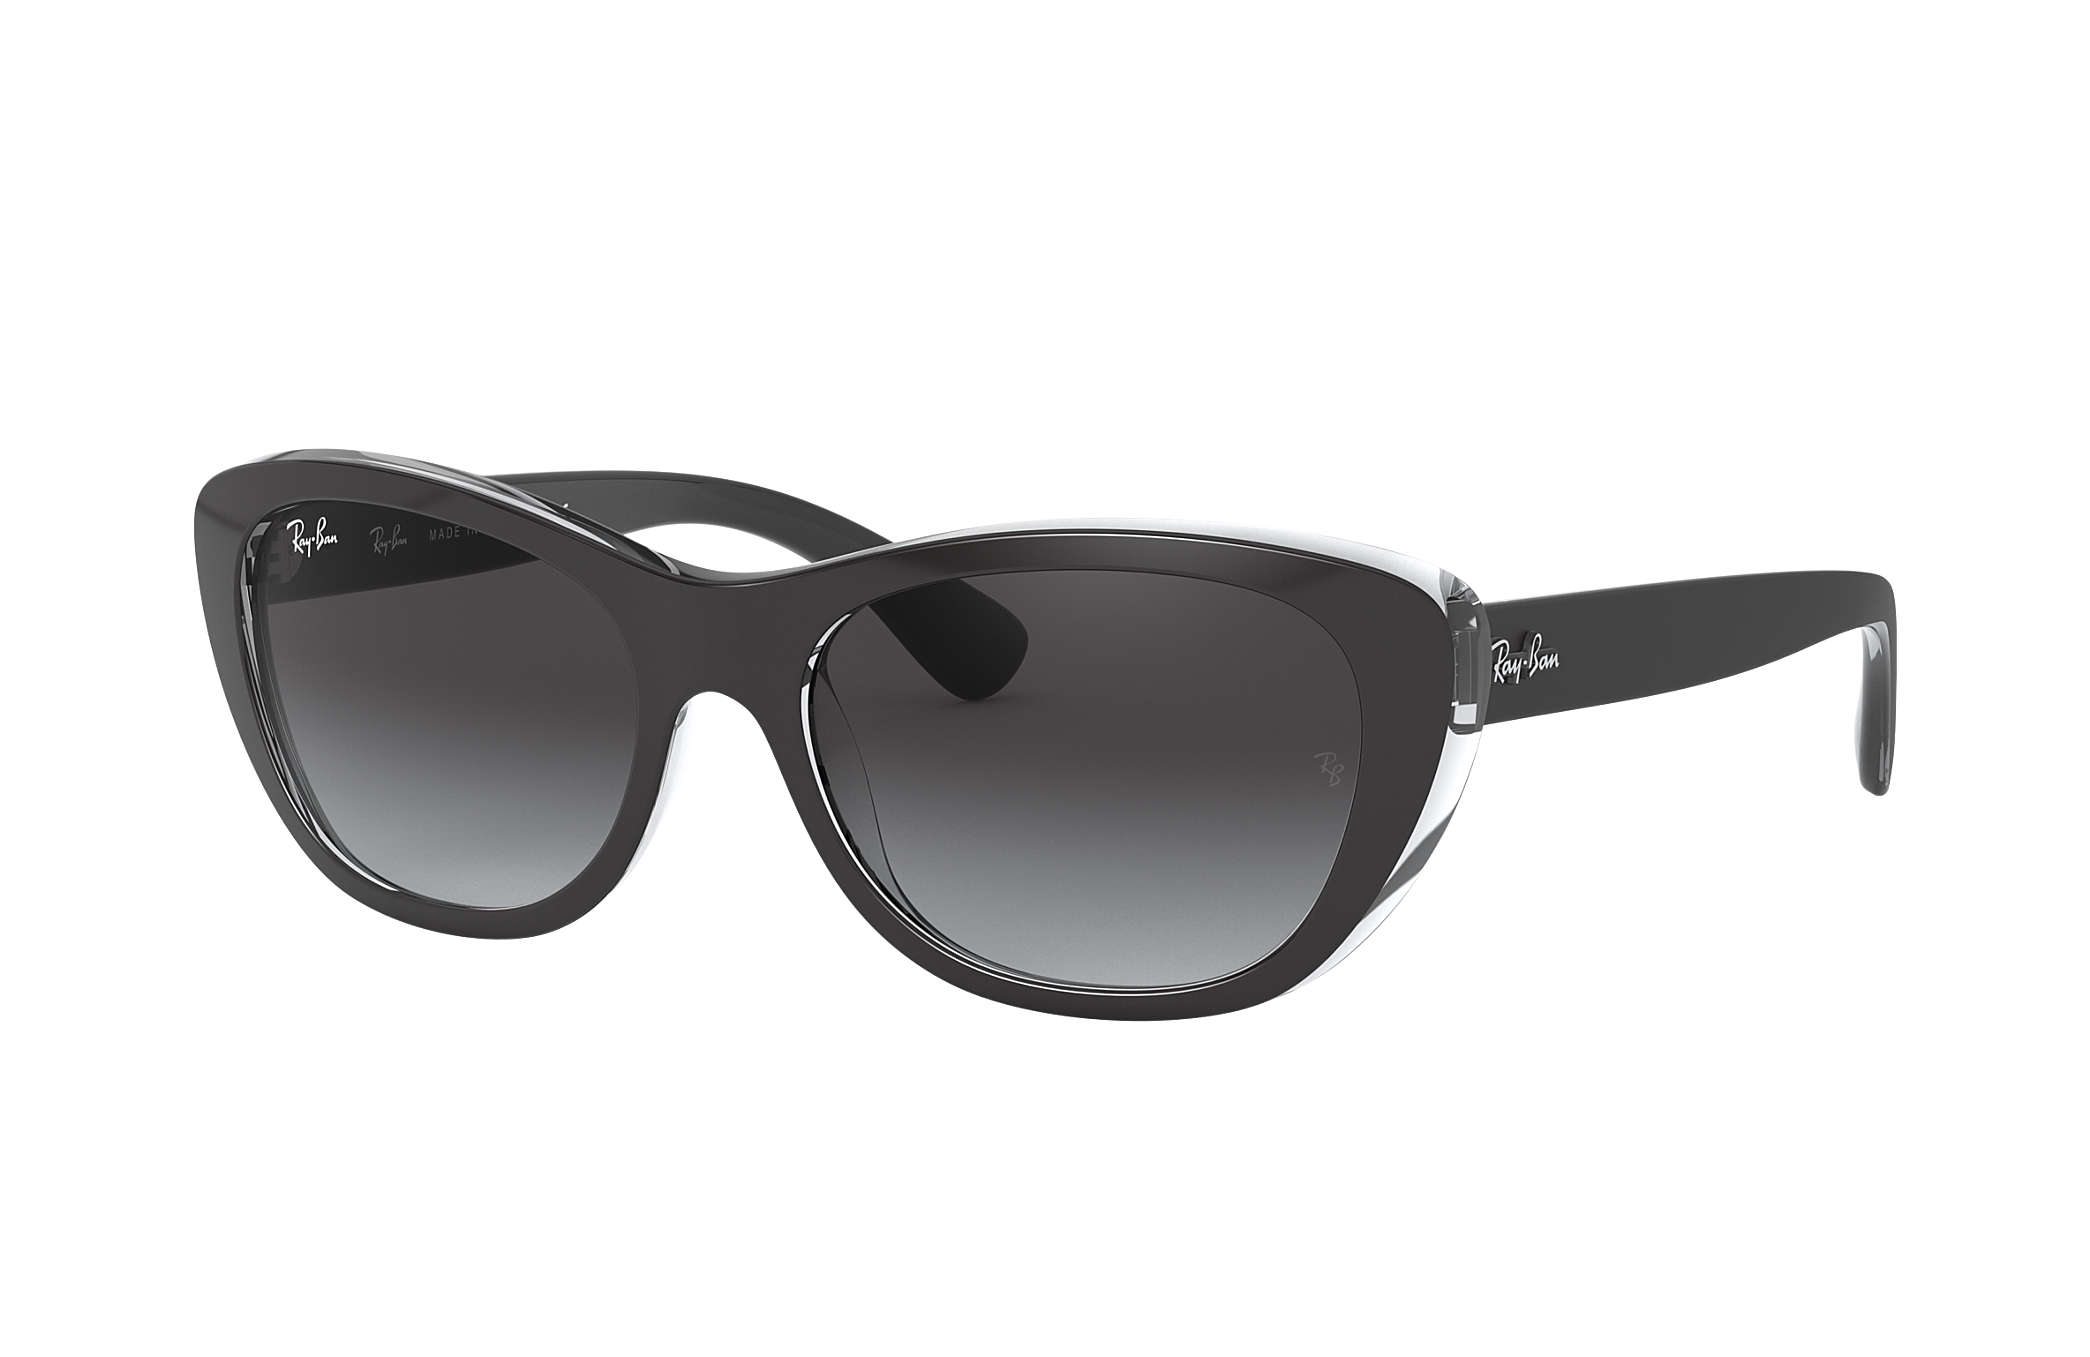 Ray-Ban RB4227 60528G 55 mm/17 mm IRzK9EjuT